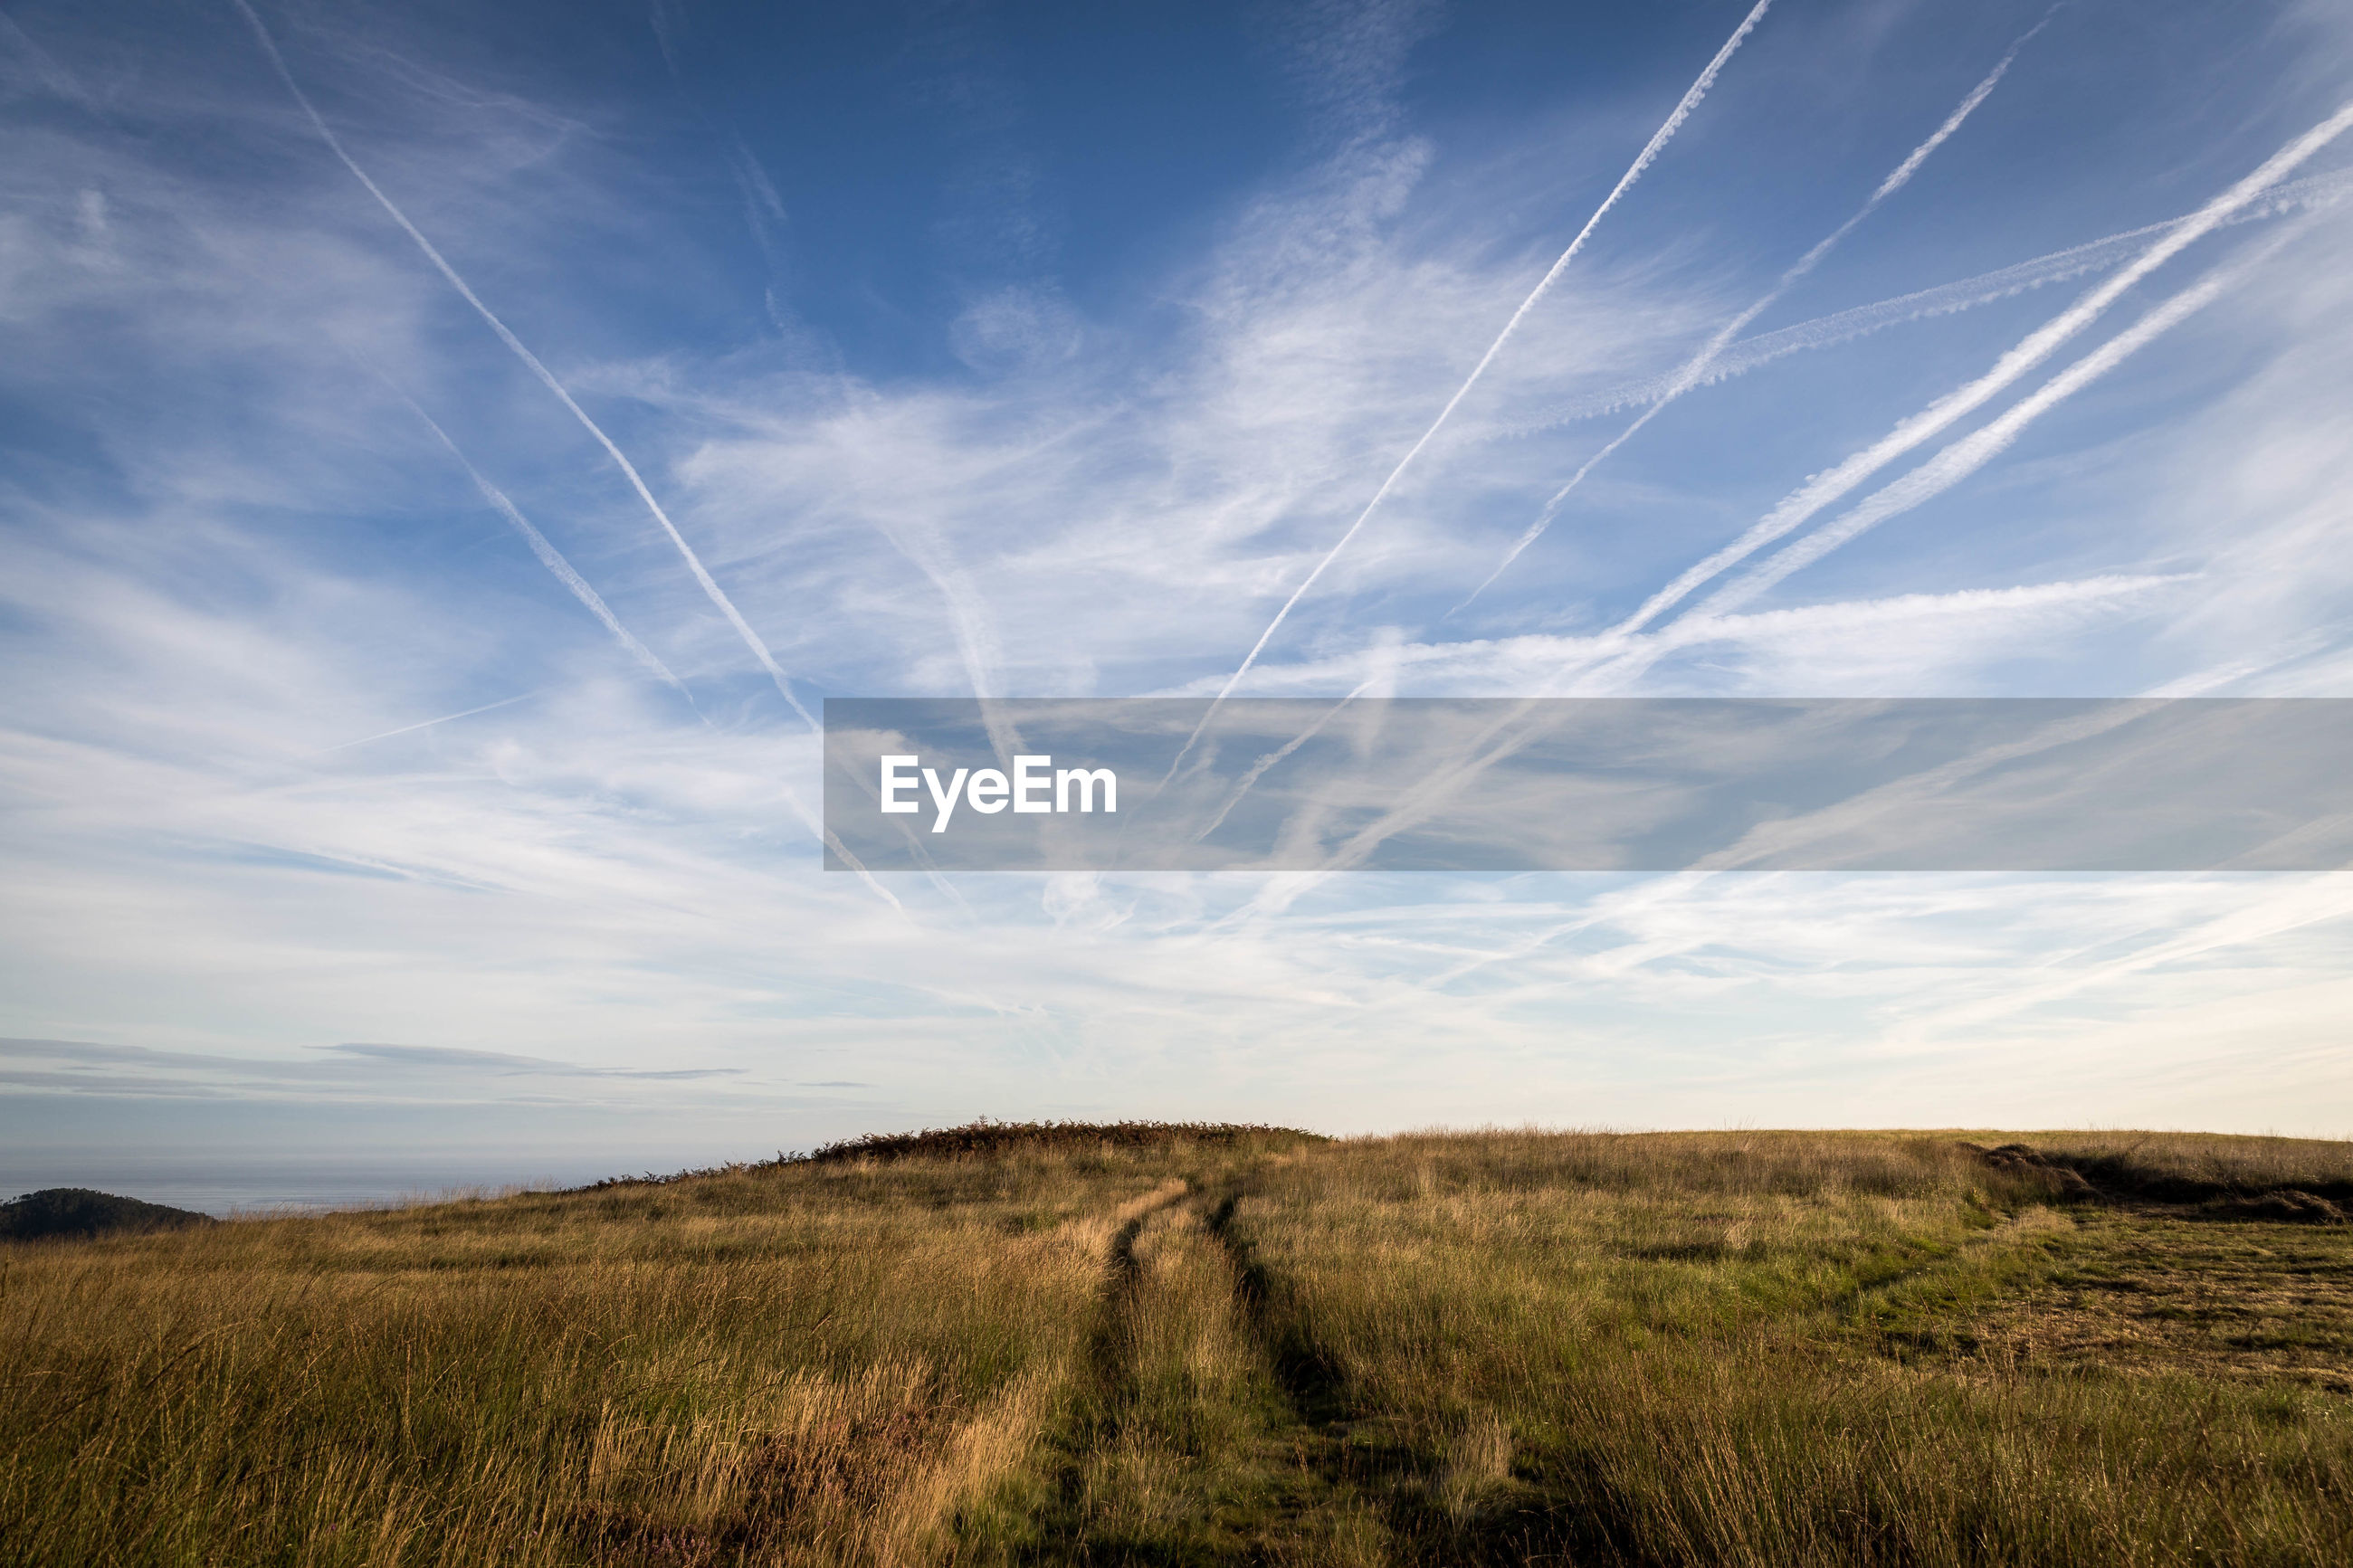 SCENIC VIEW OF FIELD AGAINST VAPOR TRAILS IN SKY